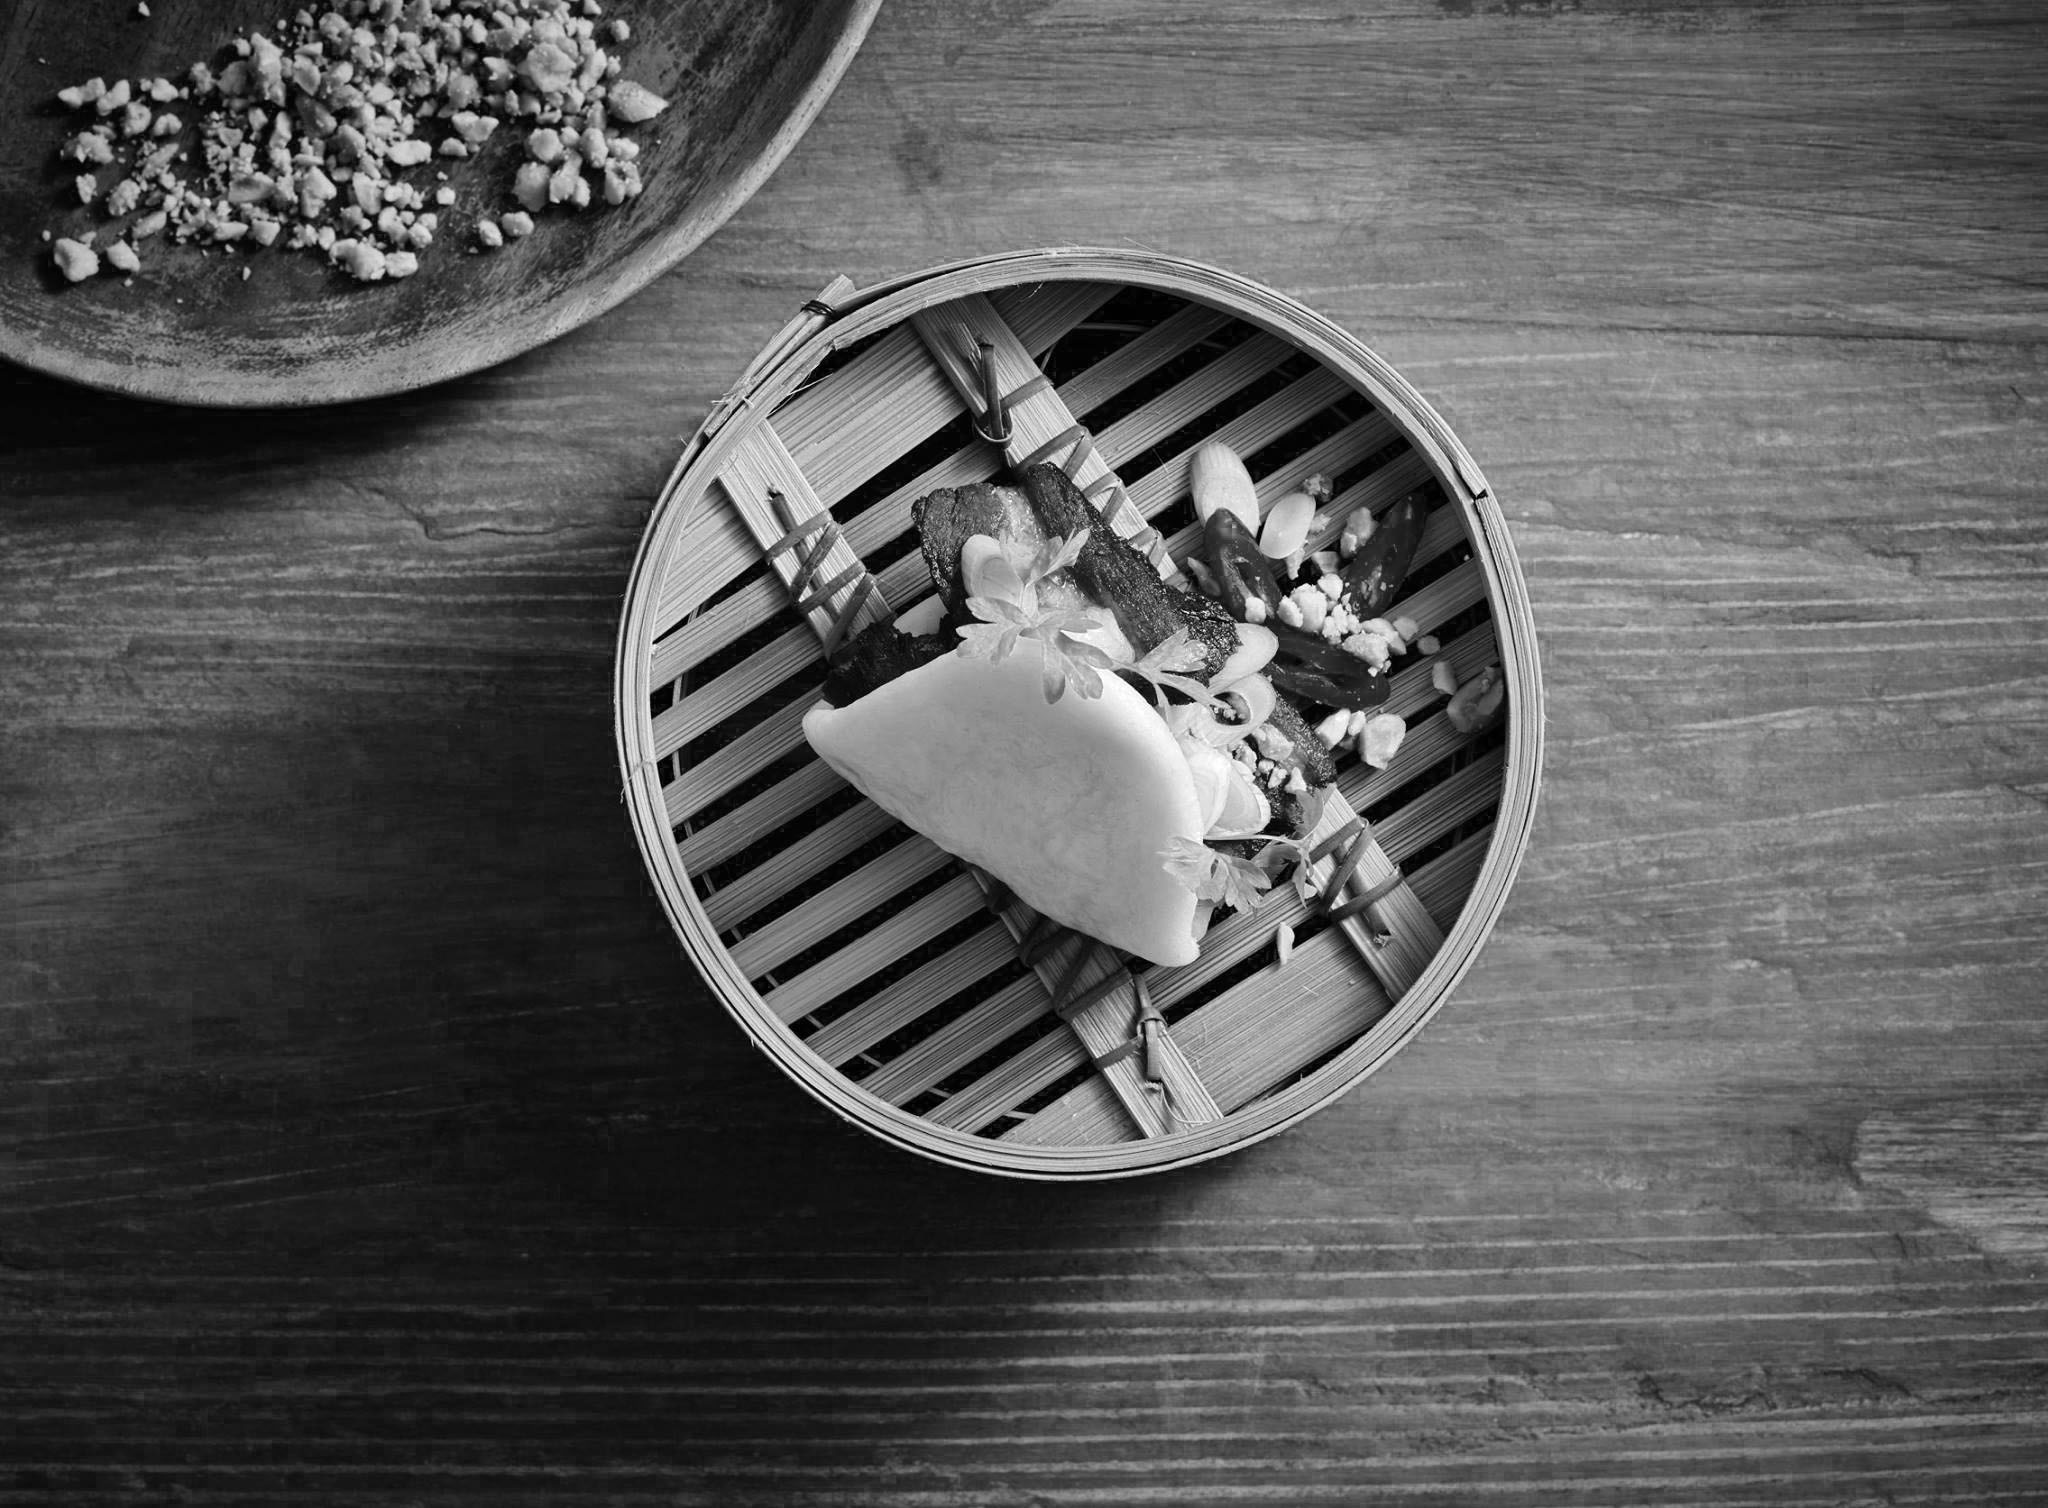 Bao food bw